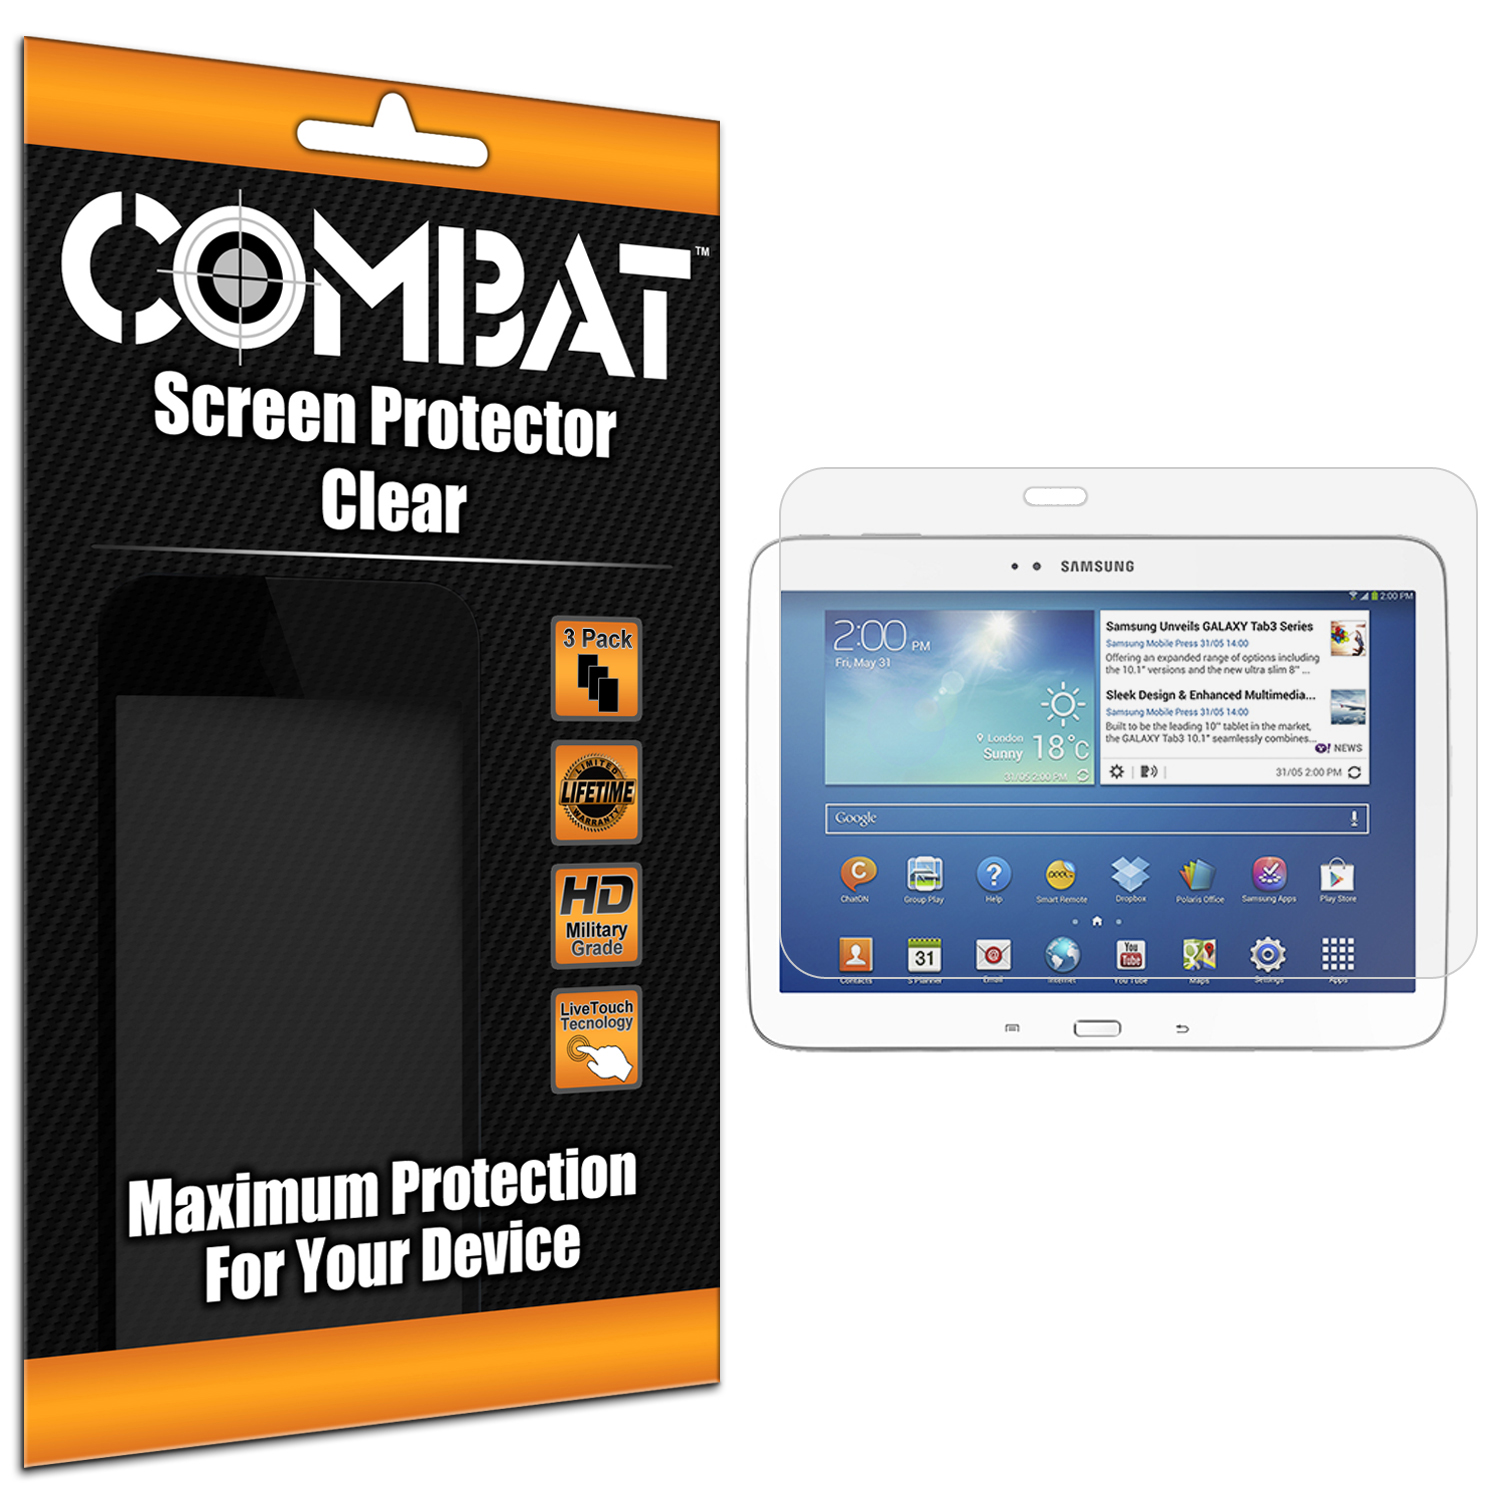 Samsung Galaxy Tab 3 10.1 Combat 3 Pack HD Clear Screen Protector